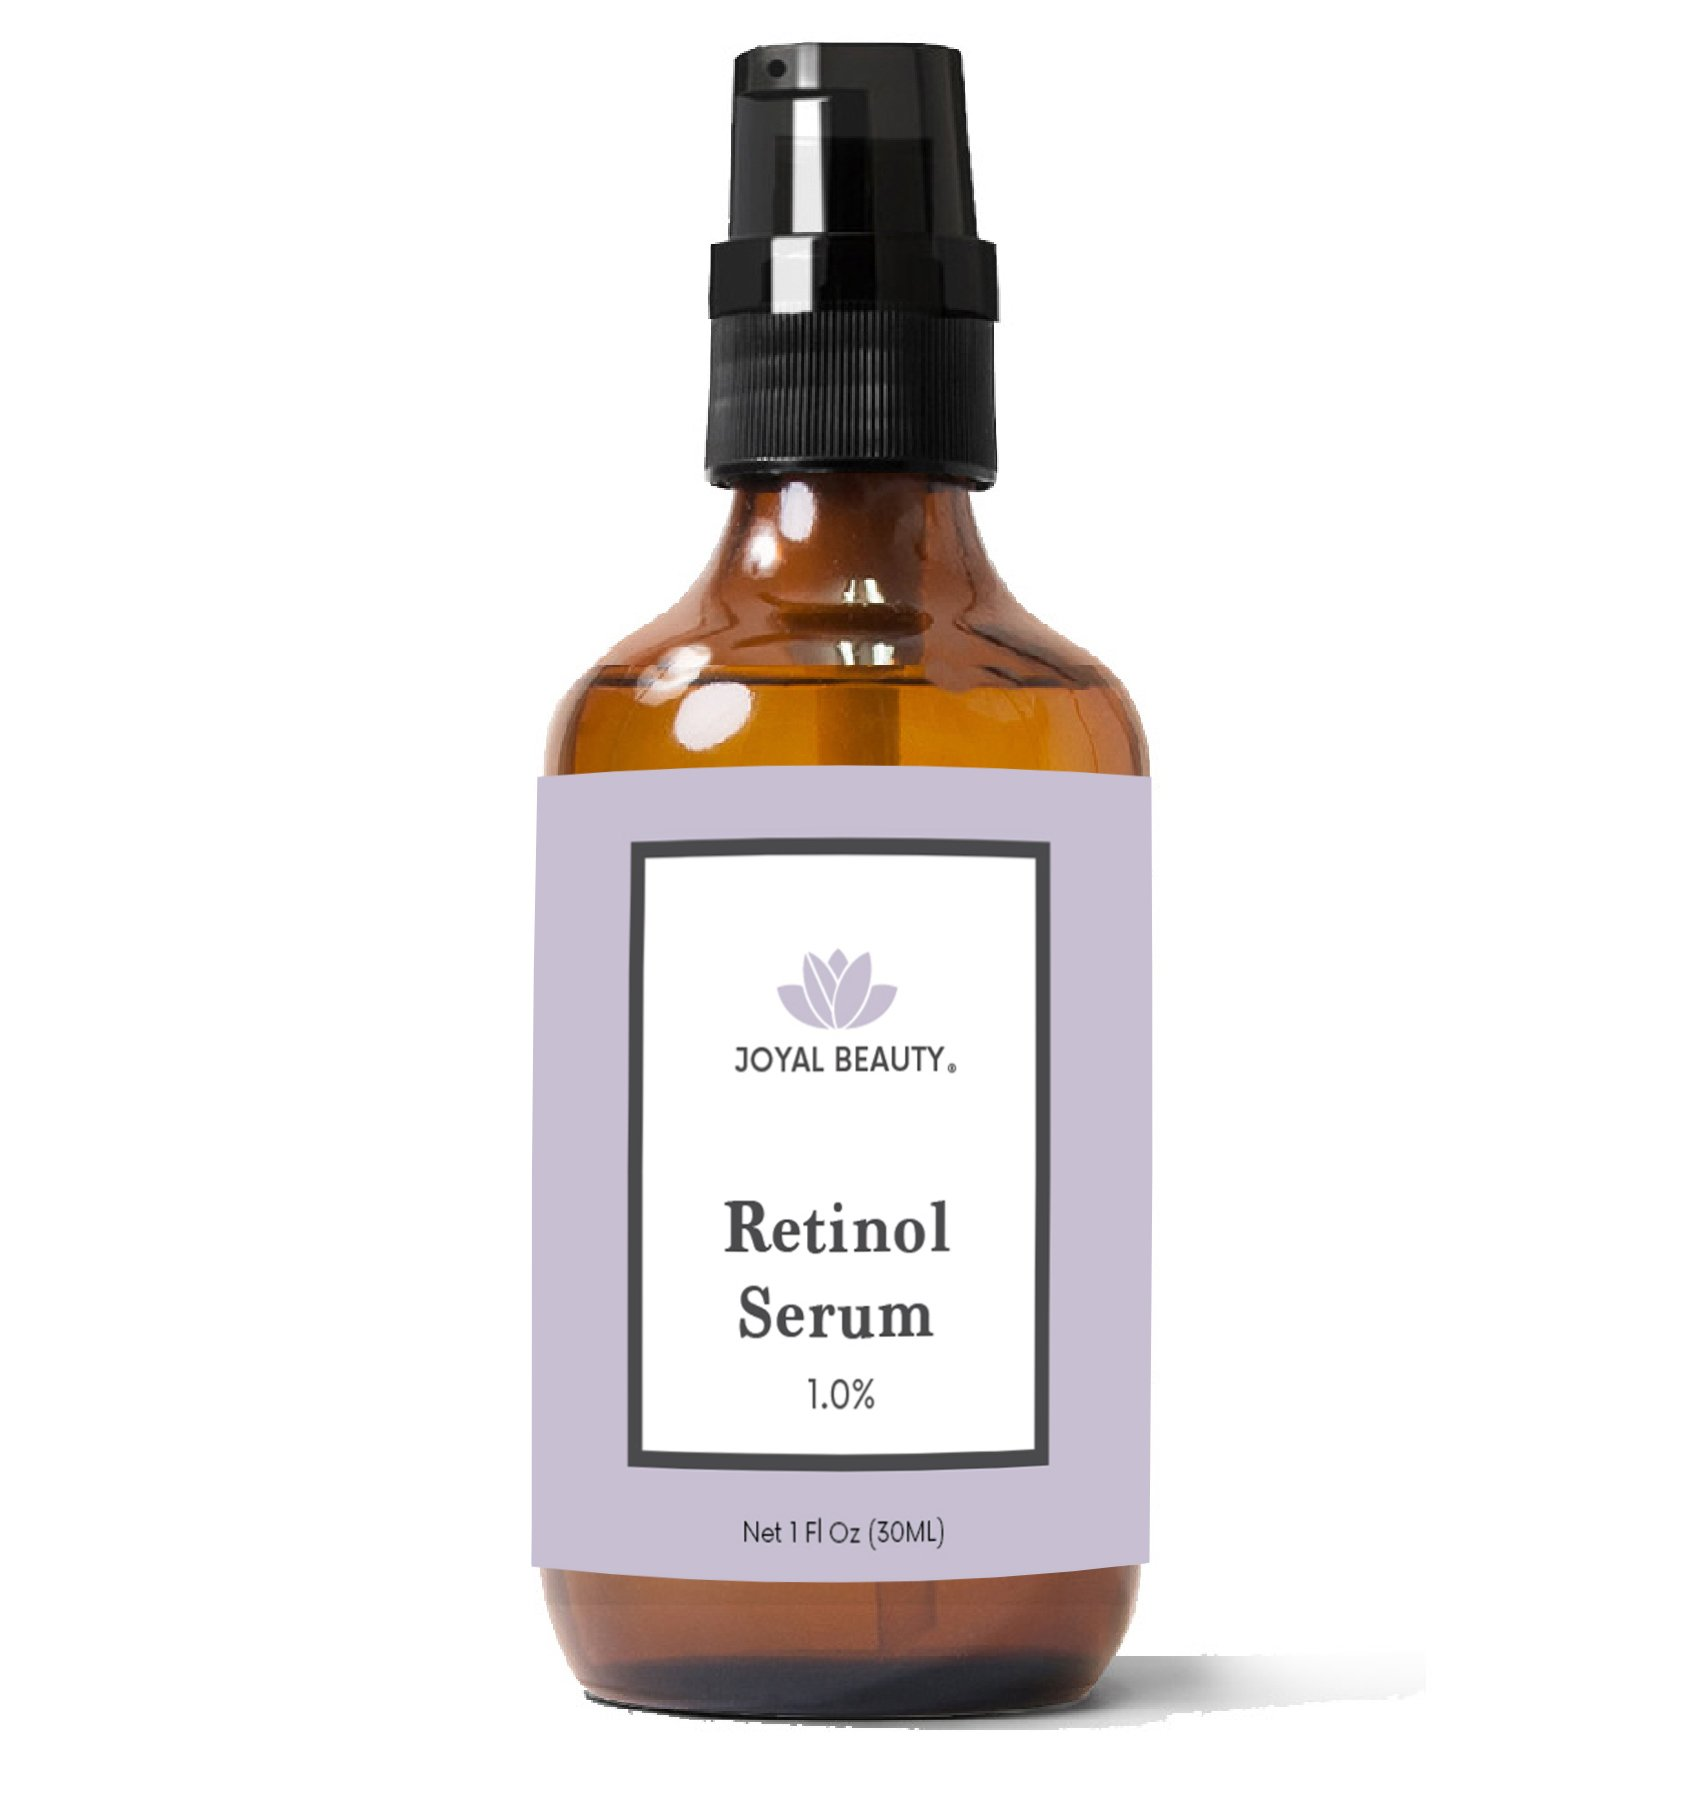 Joyal Beauty Organic Retinol Serum for Face Skin Eyes. Best for Anti-Aging Firming Fine Lines Anti Wrinkle Acne Pores. Advanced Night Serum for Men and Women. 1.0%. 1 oz.